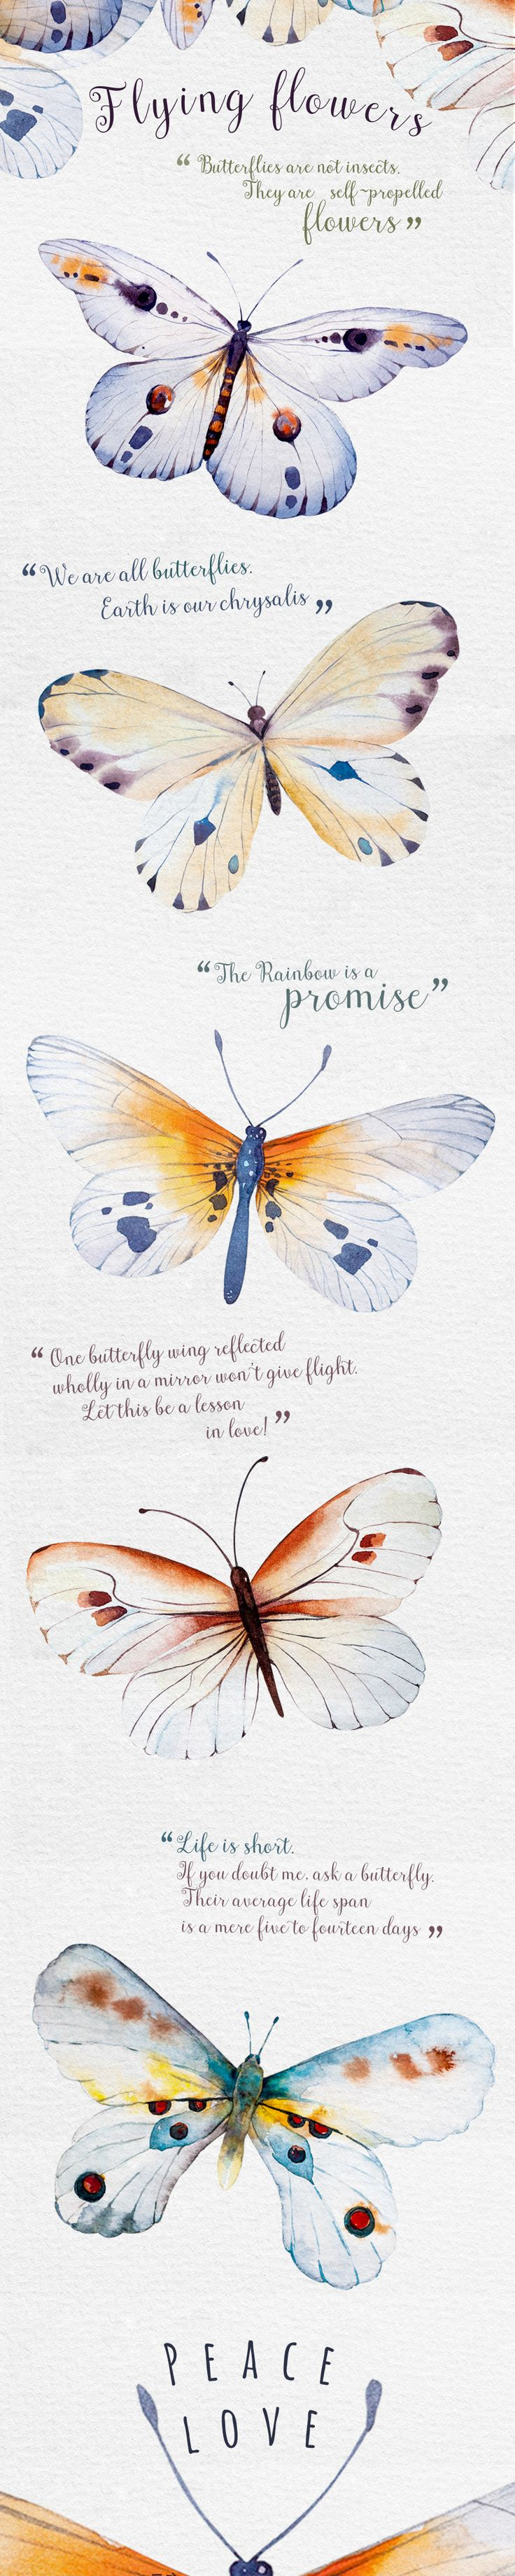 Available for sale here:https://creativemarket.com/Kris_peace/335161-Watercolor-butterfly-DIY?u=Kris_peace